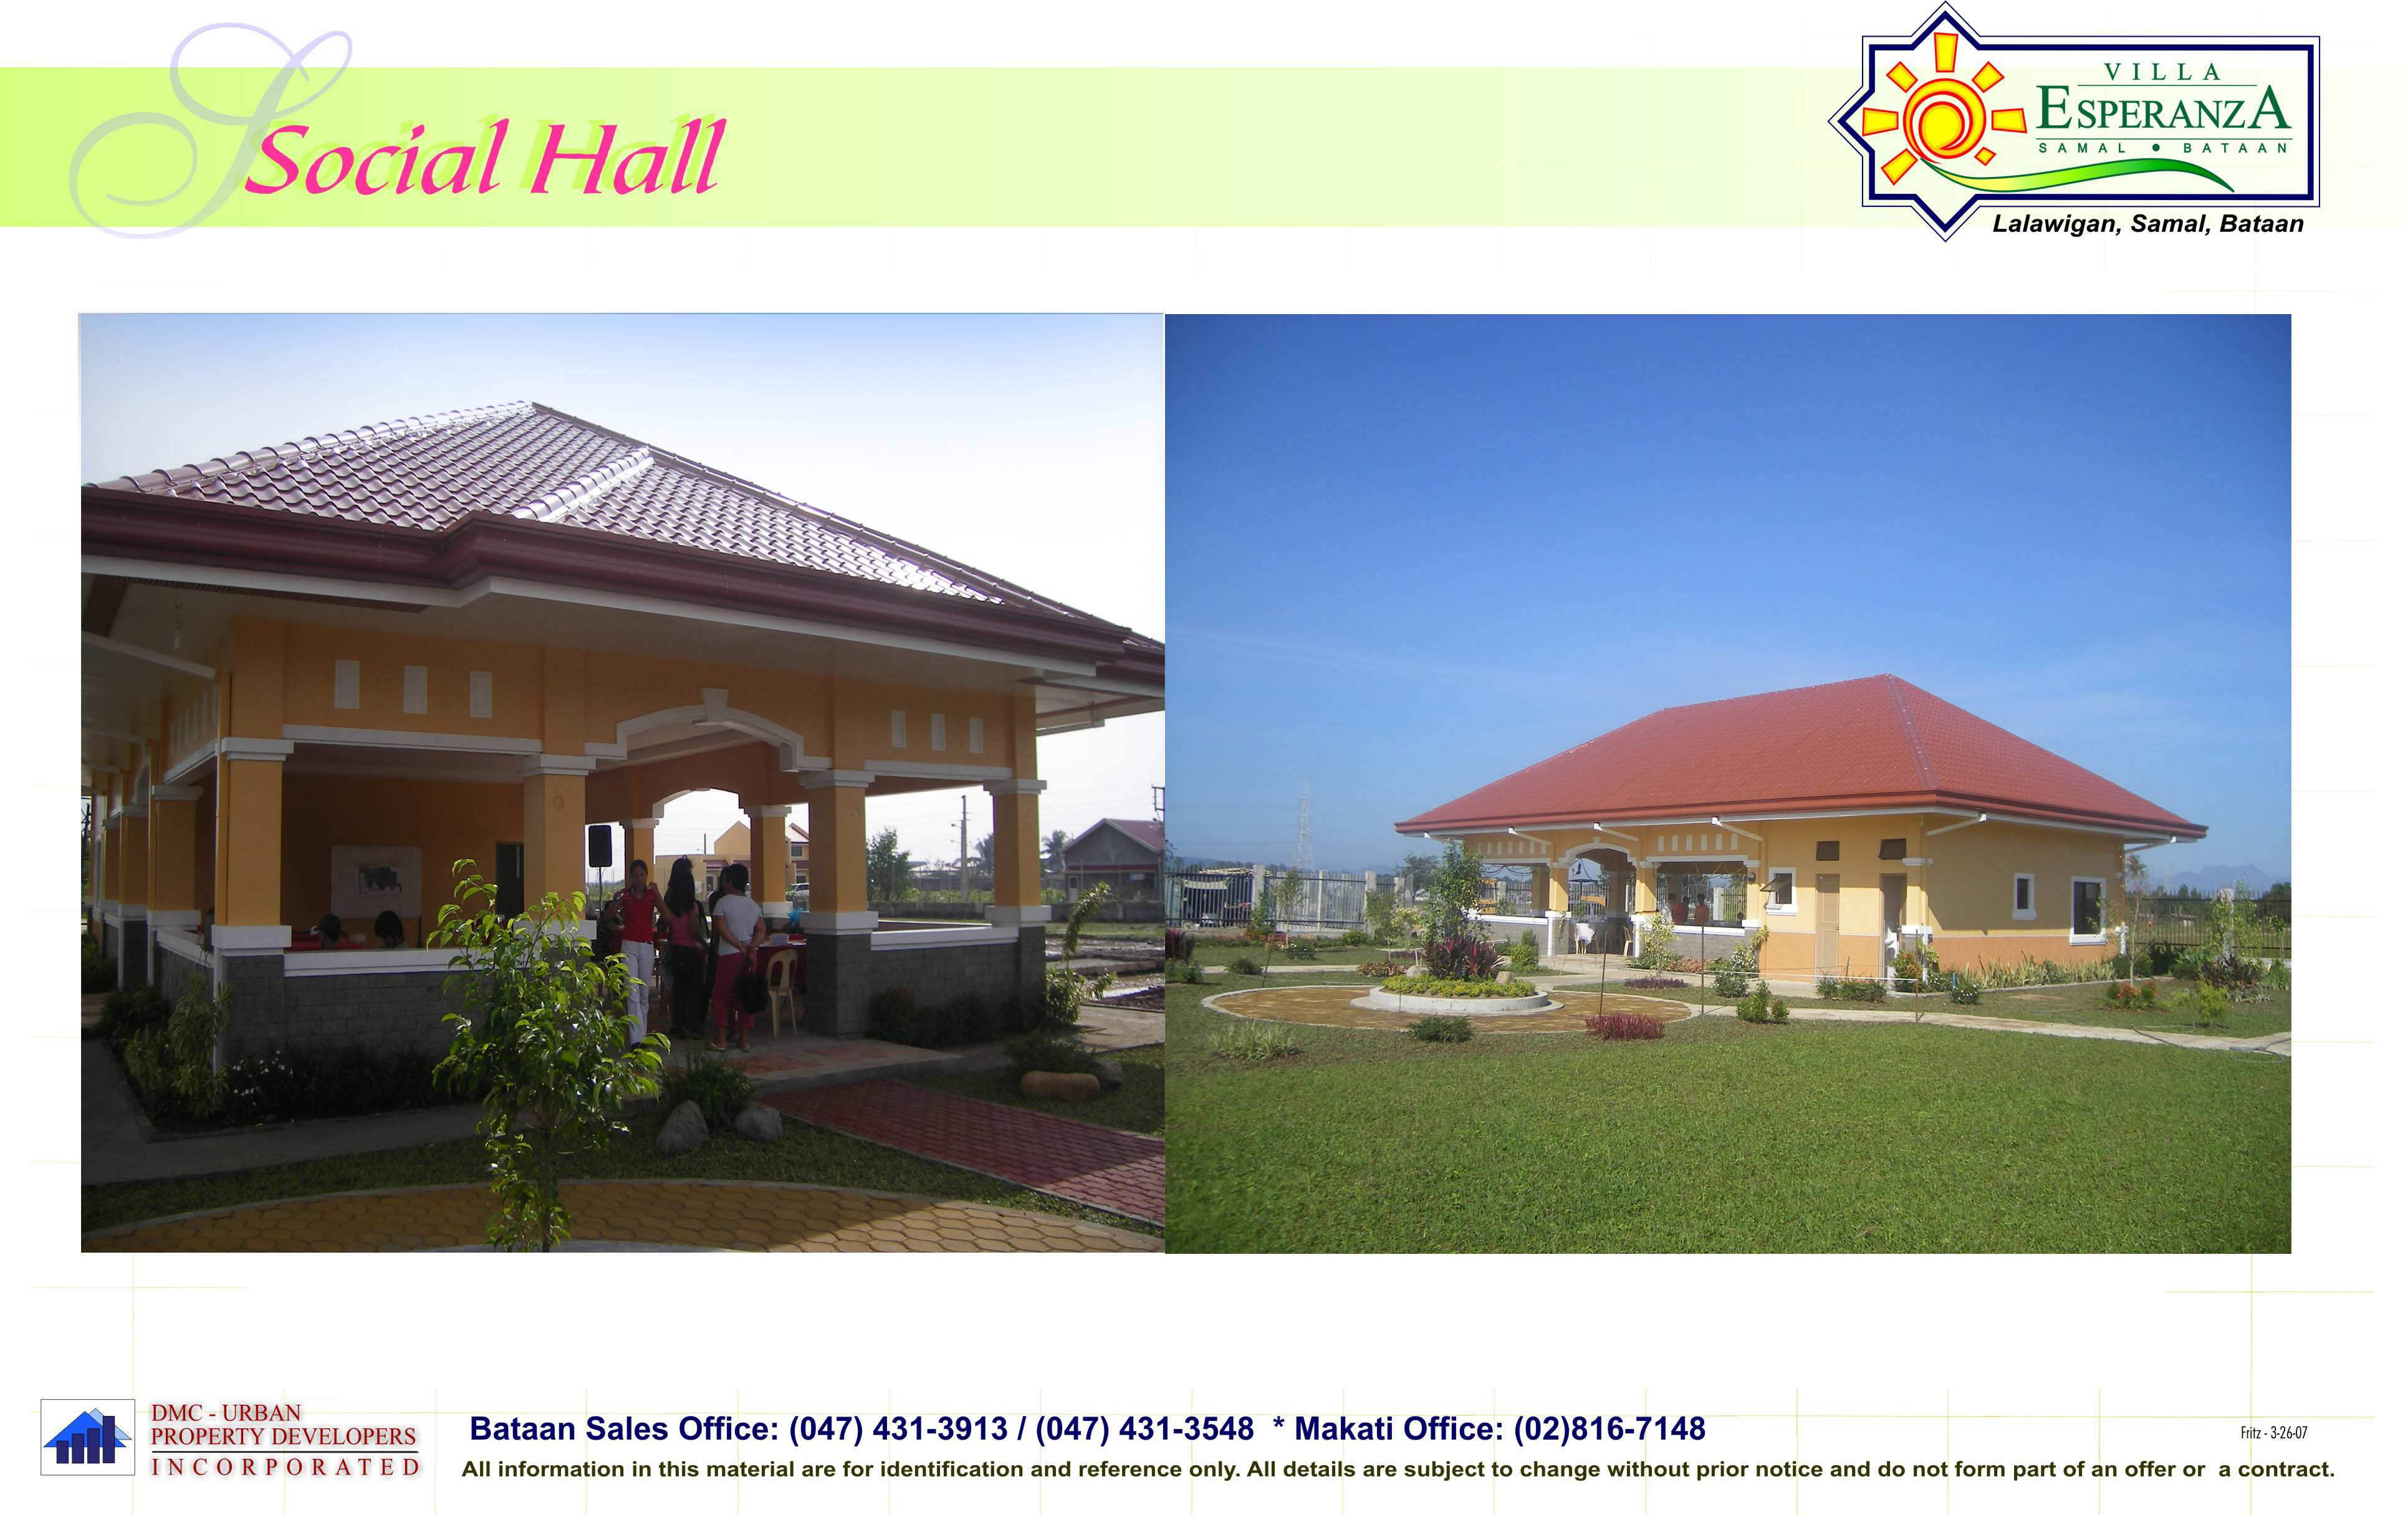 Villa Esperanza Villa Esperanza Samal Bataan The Sprit Of Urban Living Is Now At